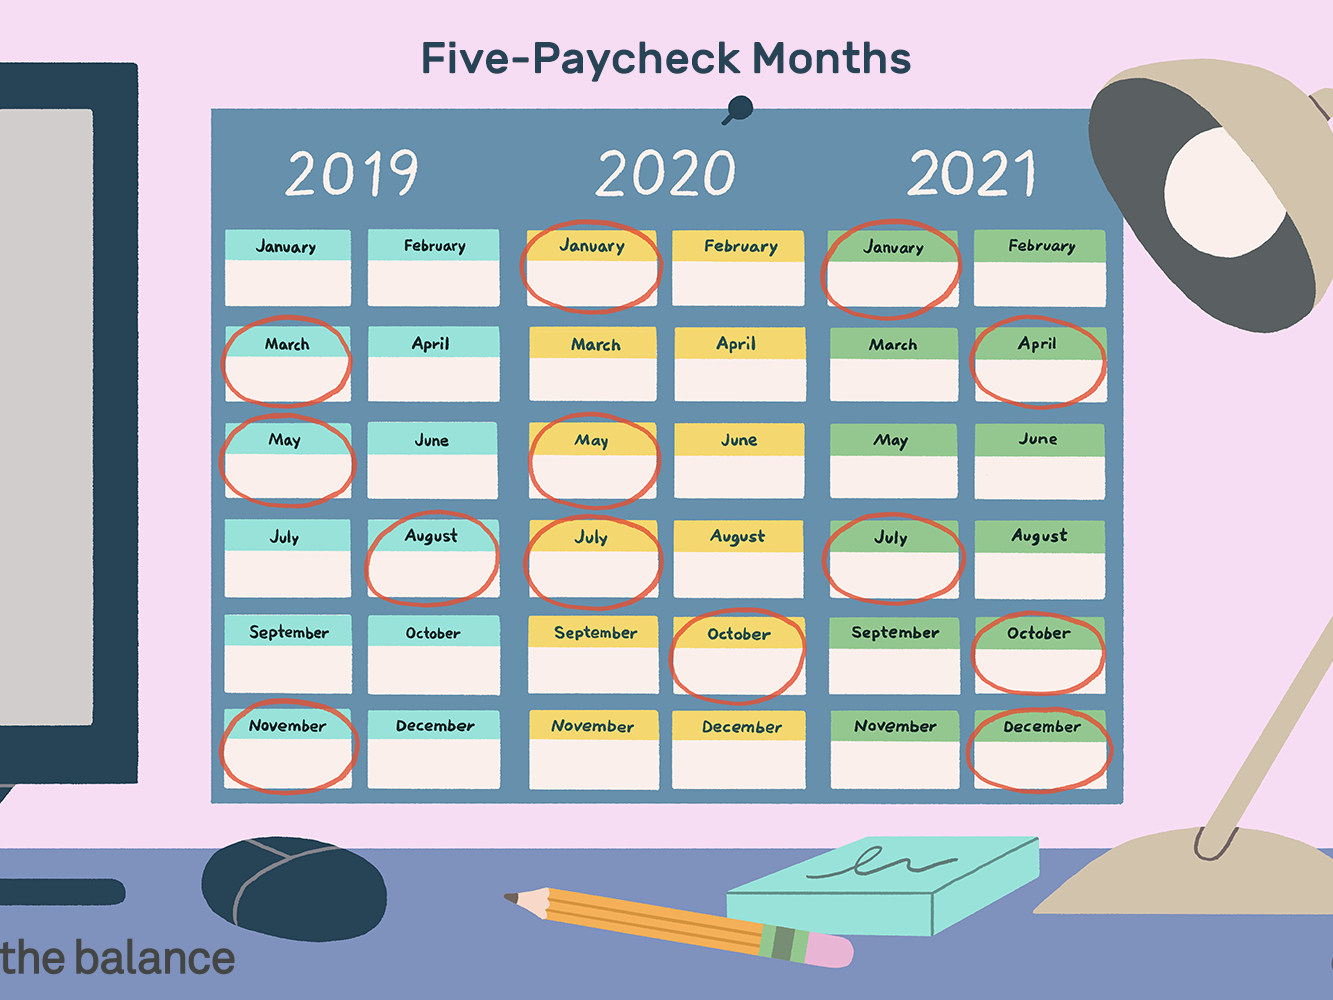 Months In Which You Receive 5 Paychecks From 2020-2029 for 2021 Payday Working Days Calendar